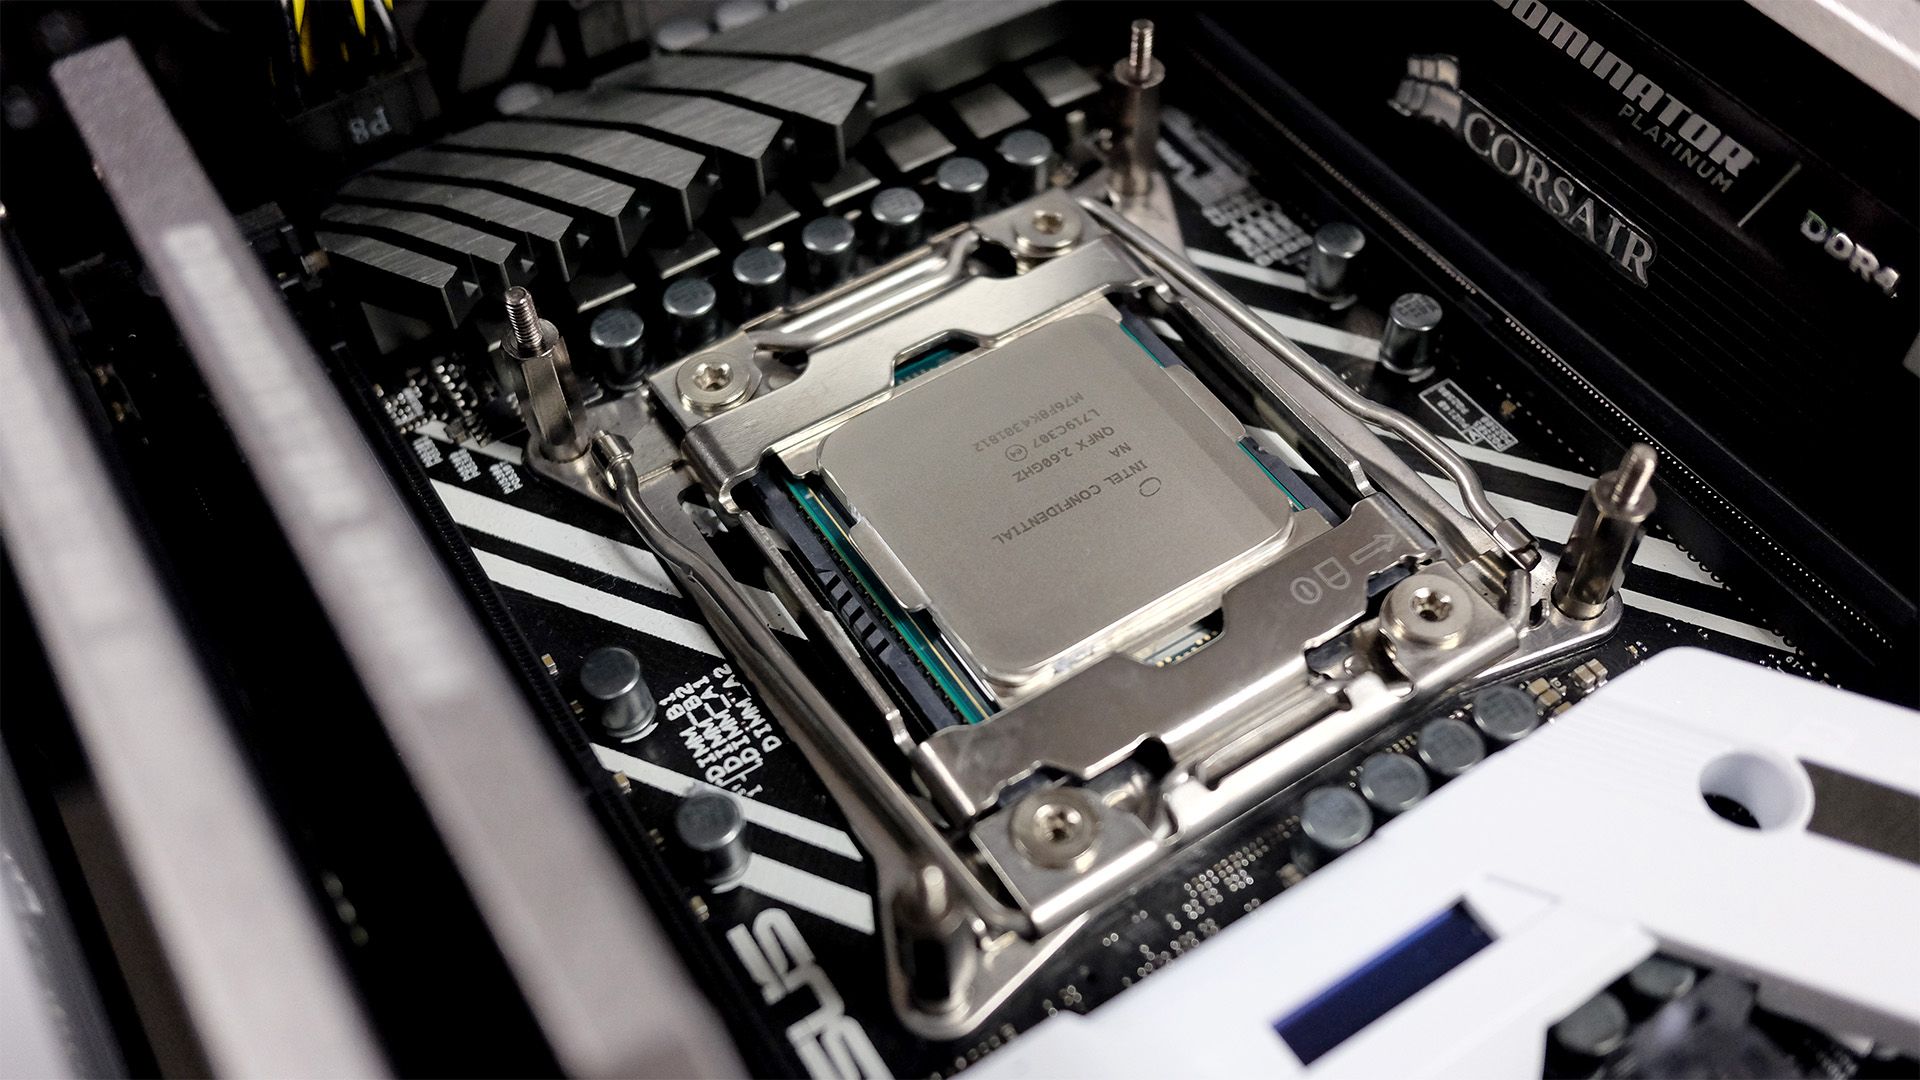 Intel's processors remained as pricey as ever in 2017